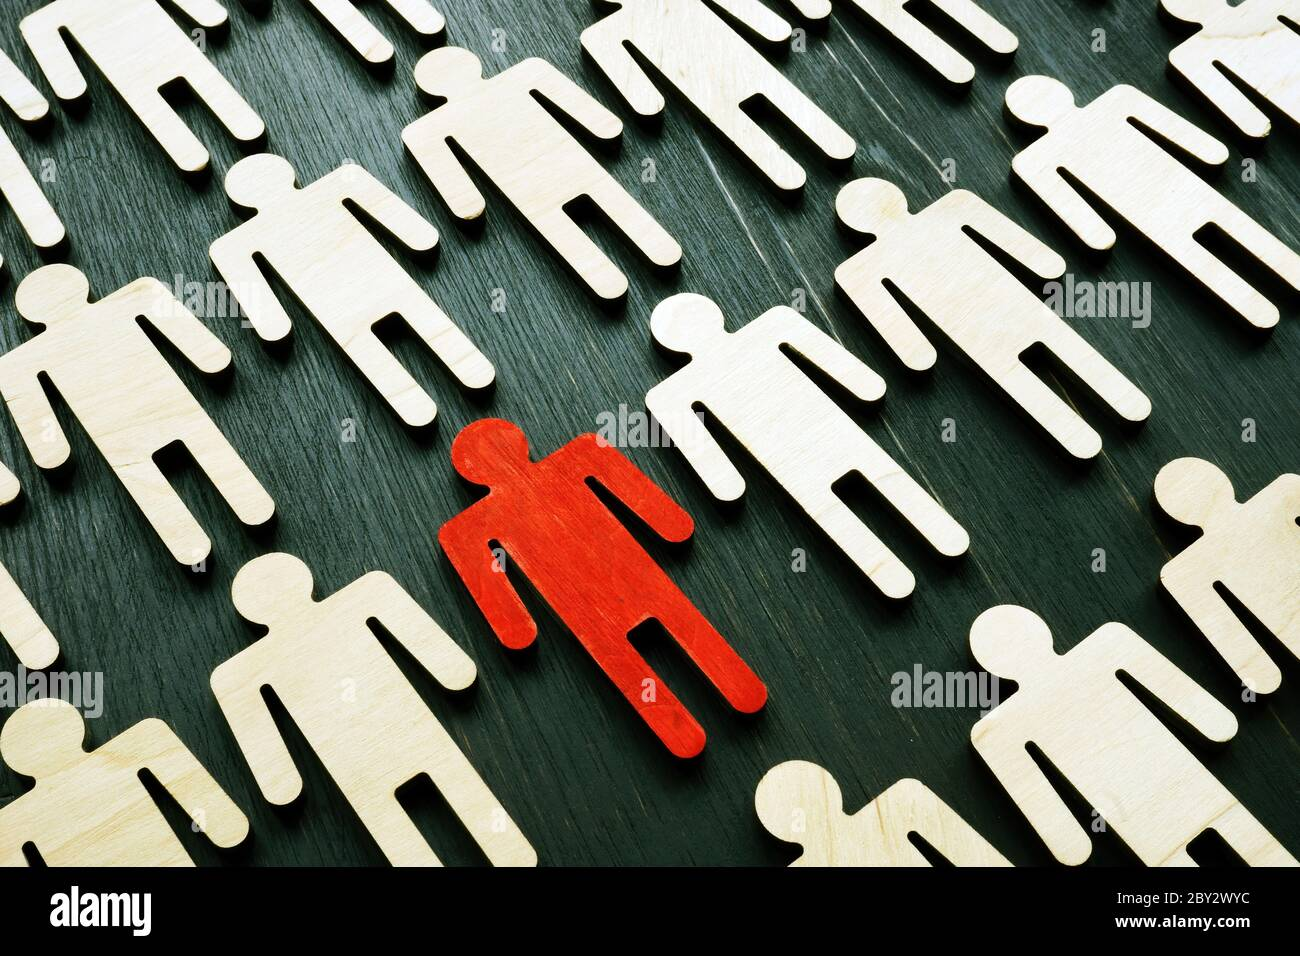 Be unique and different. Crowd from wooden figures and red one. Individuality and independence concept. Think outside the box. Stock Photo